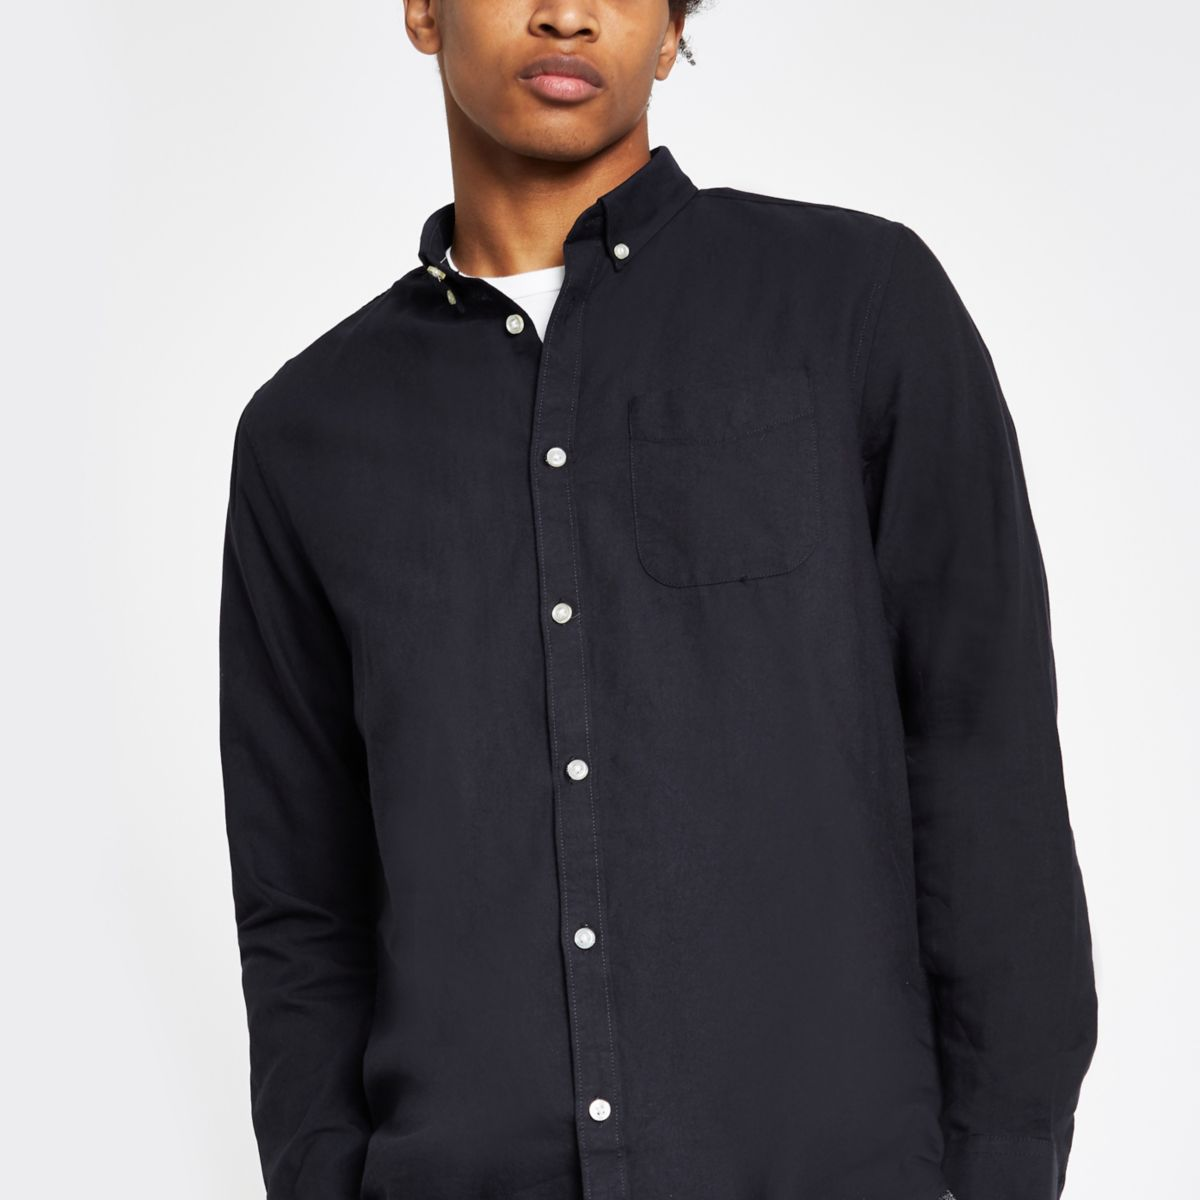 Navy Oxford long sleeve shirt